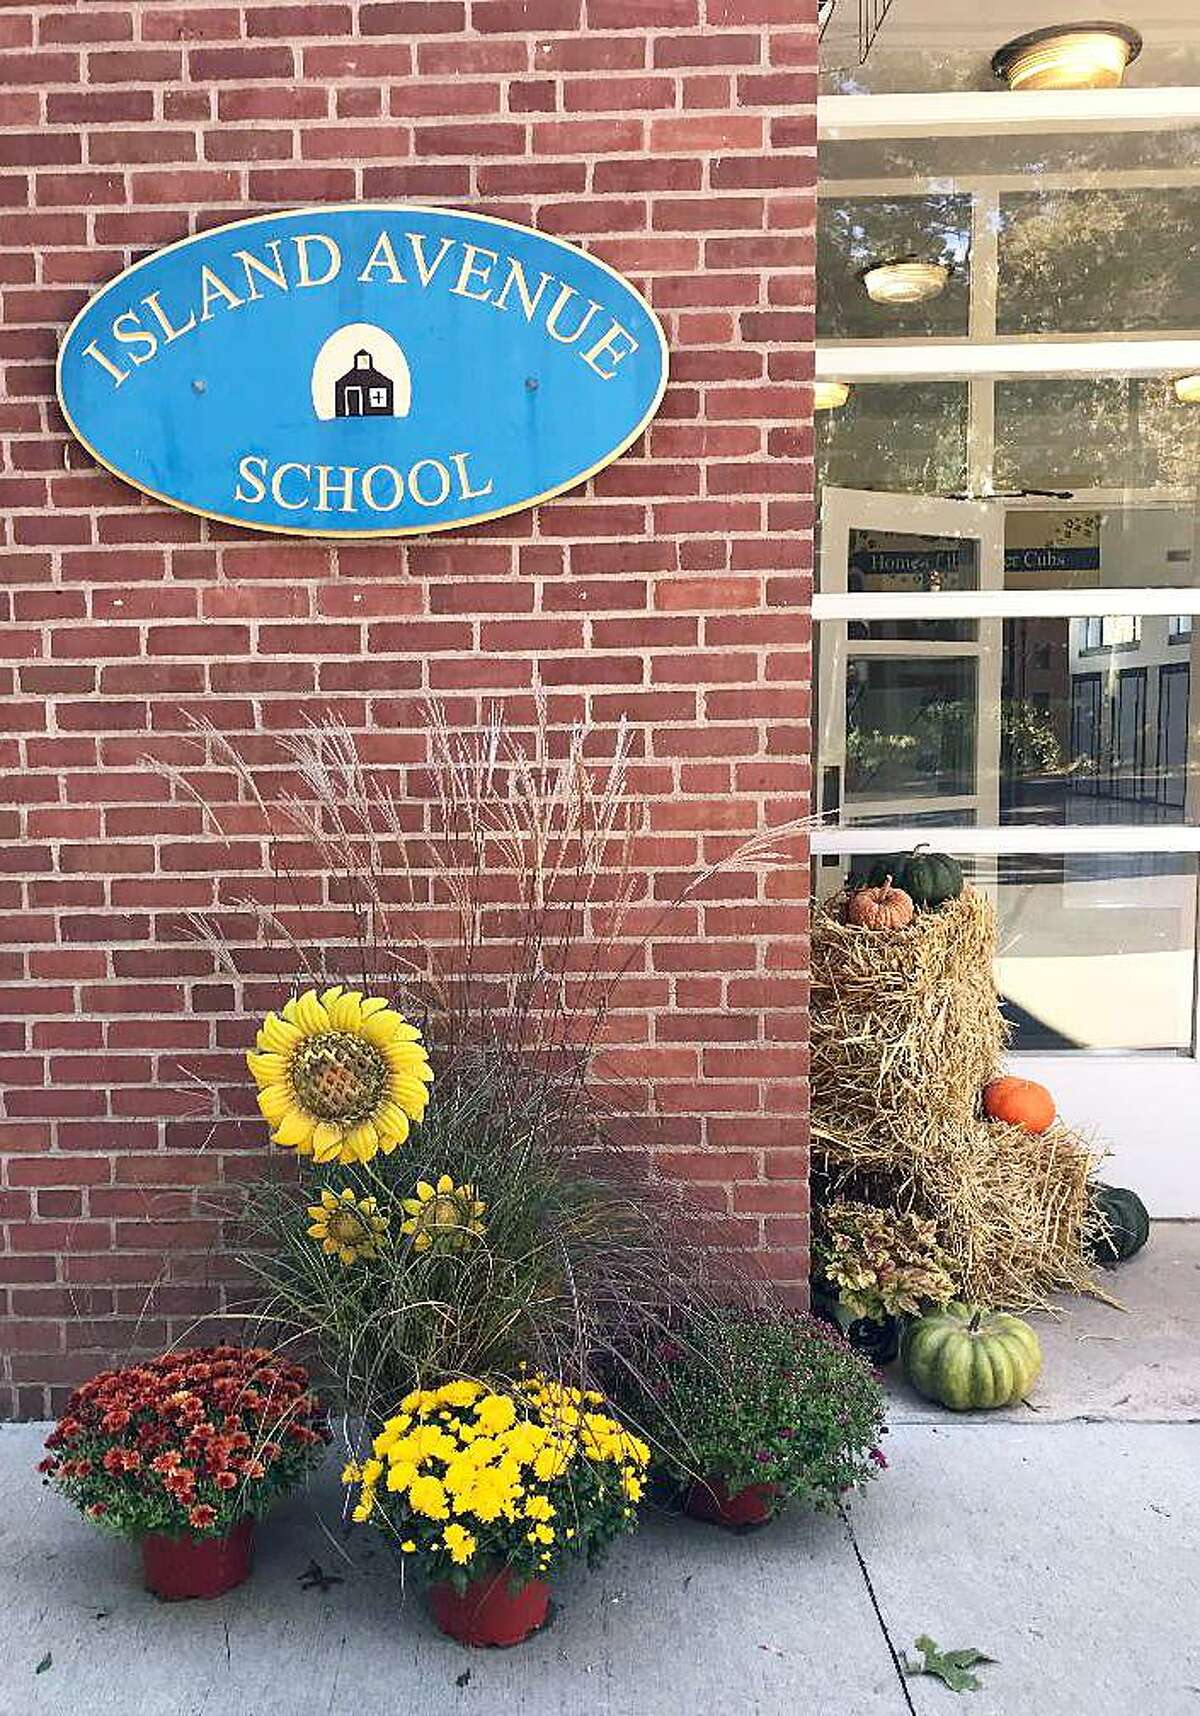 Our Lady of Mercy Prep got approval from the town of Madison to lease Island Avenue for one year starting in the 2019-20 academic year.